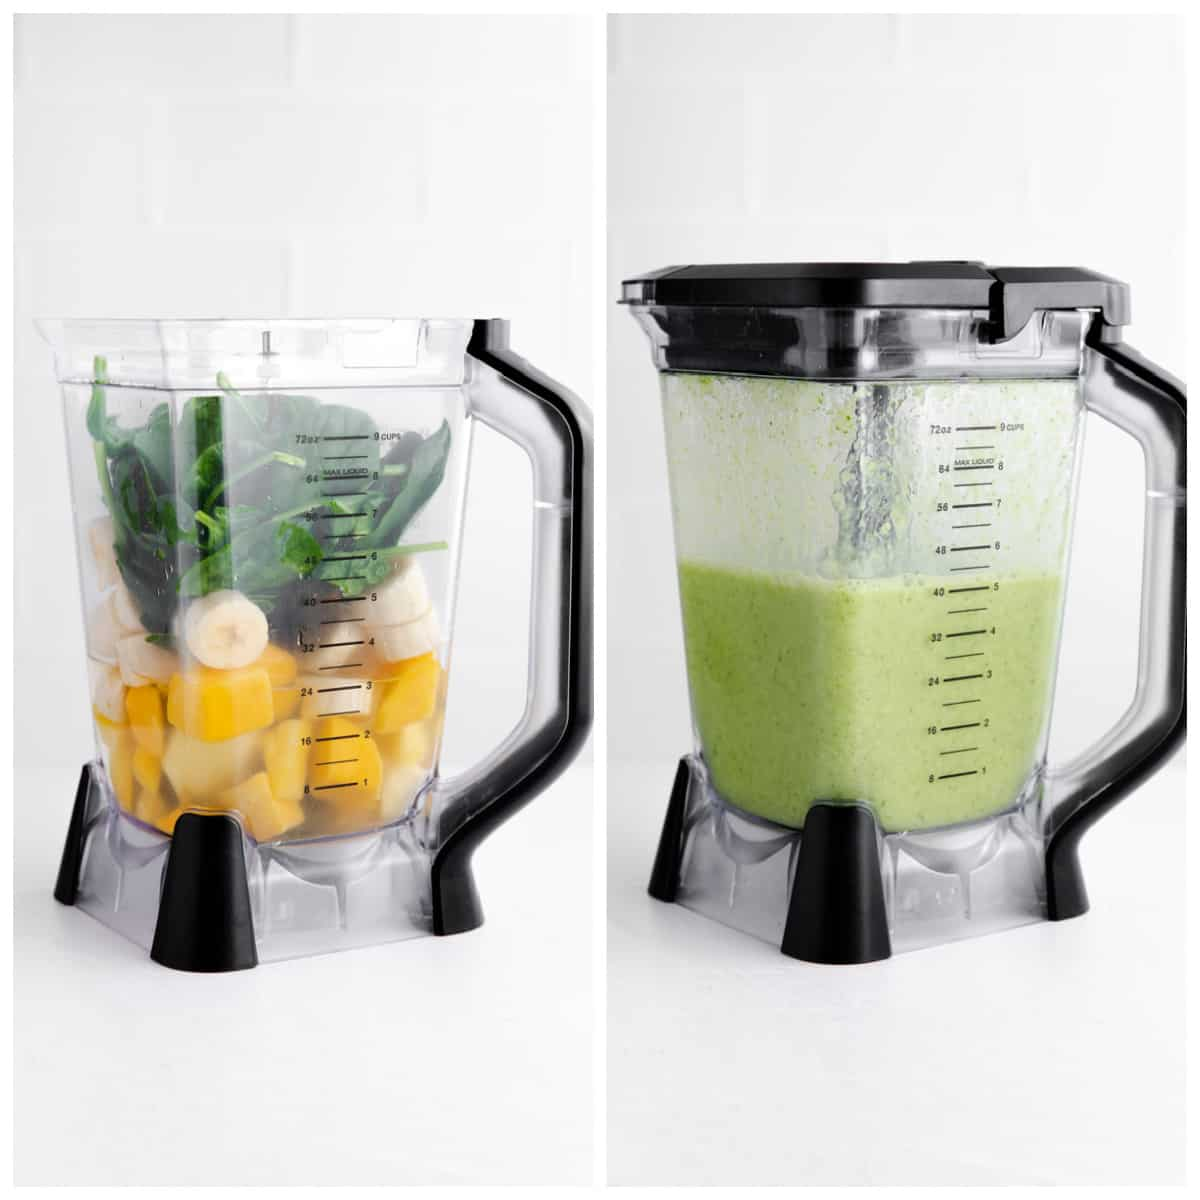 Step by step photos on how to make a Green Smoothie Recipe